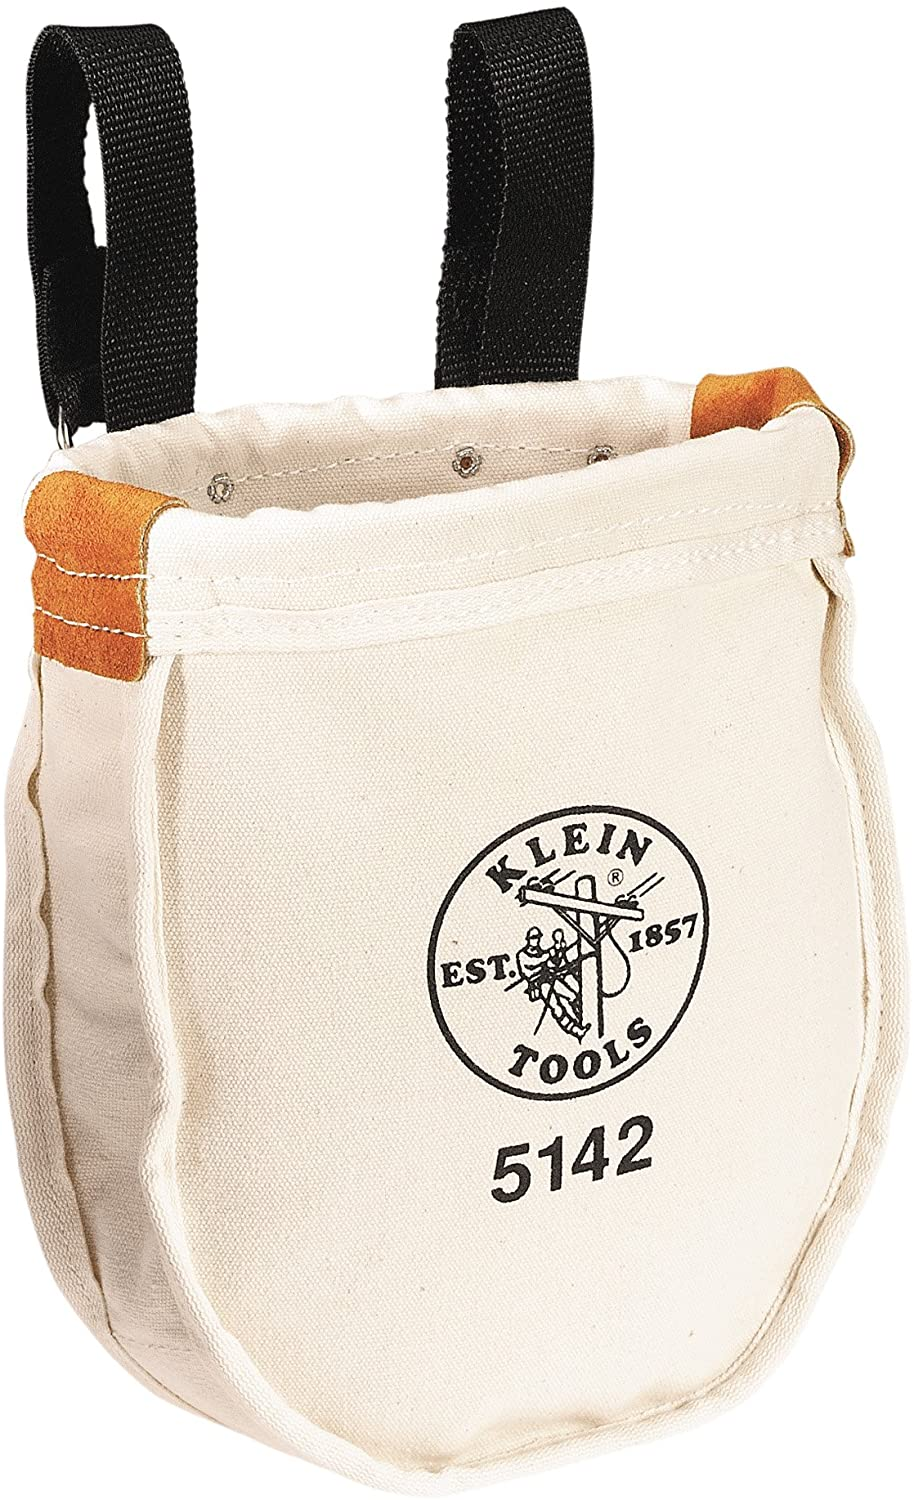 Klein Tools 5142 Heavy Tool Bag, No. 8 Canvas Utility Bag, Reinforced with Rope and Tanned Leather, Loop Belt Connection, 9 x 8 x 10-Inch